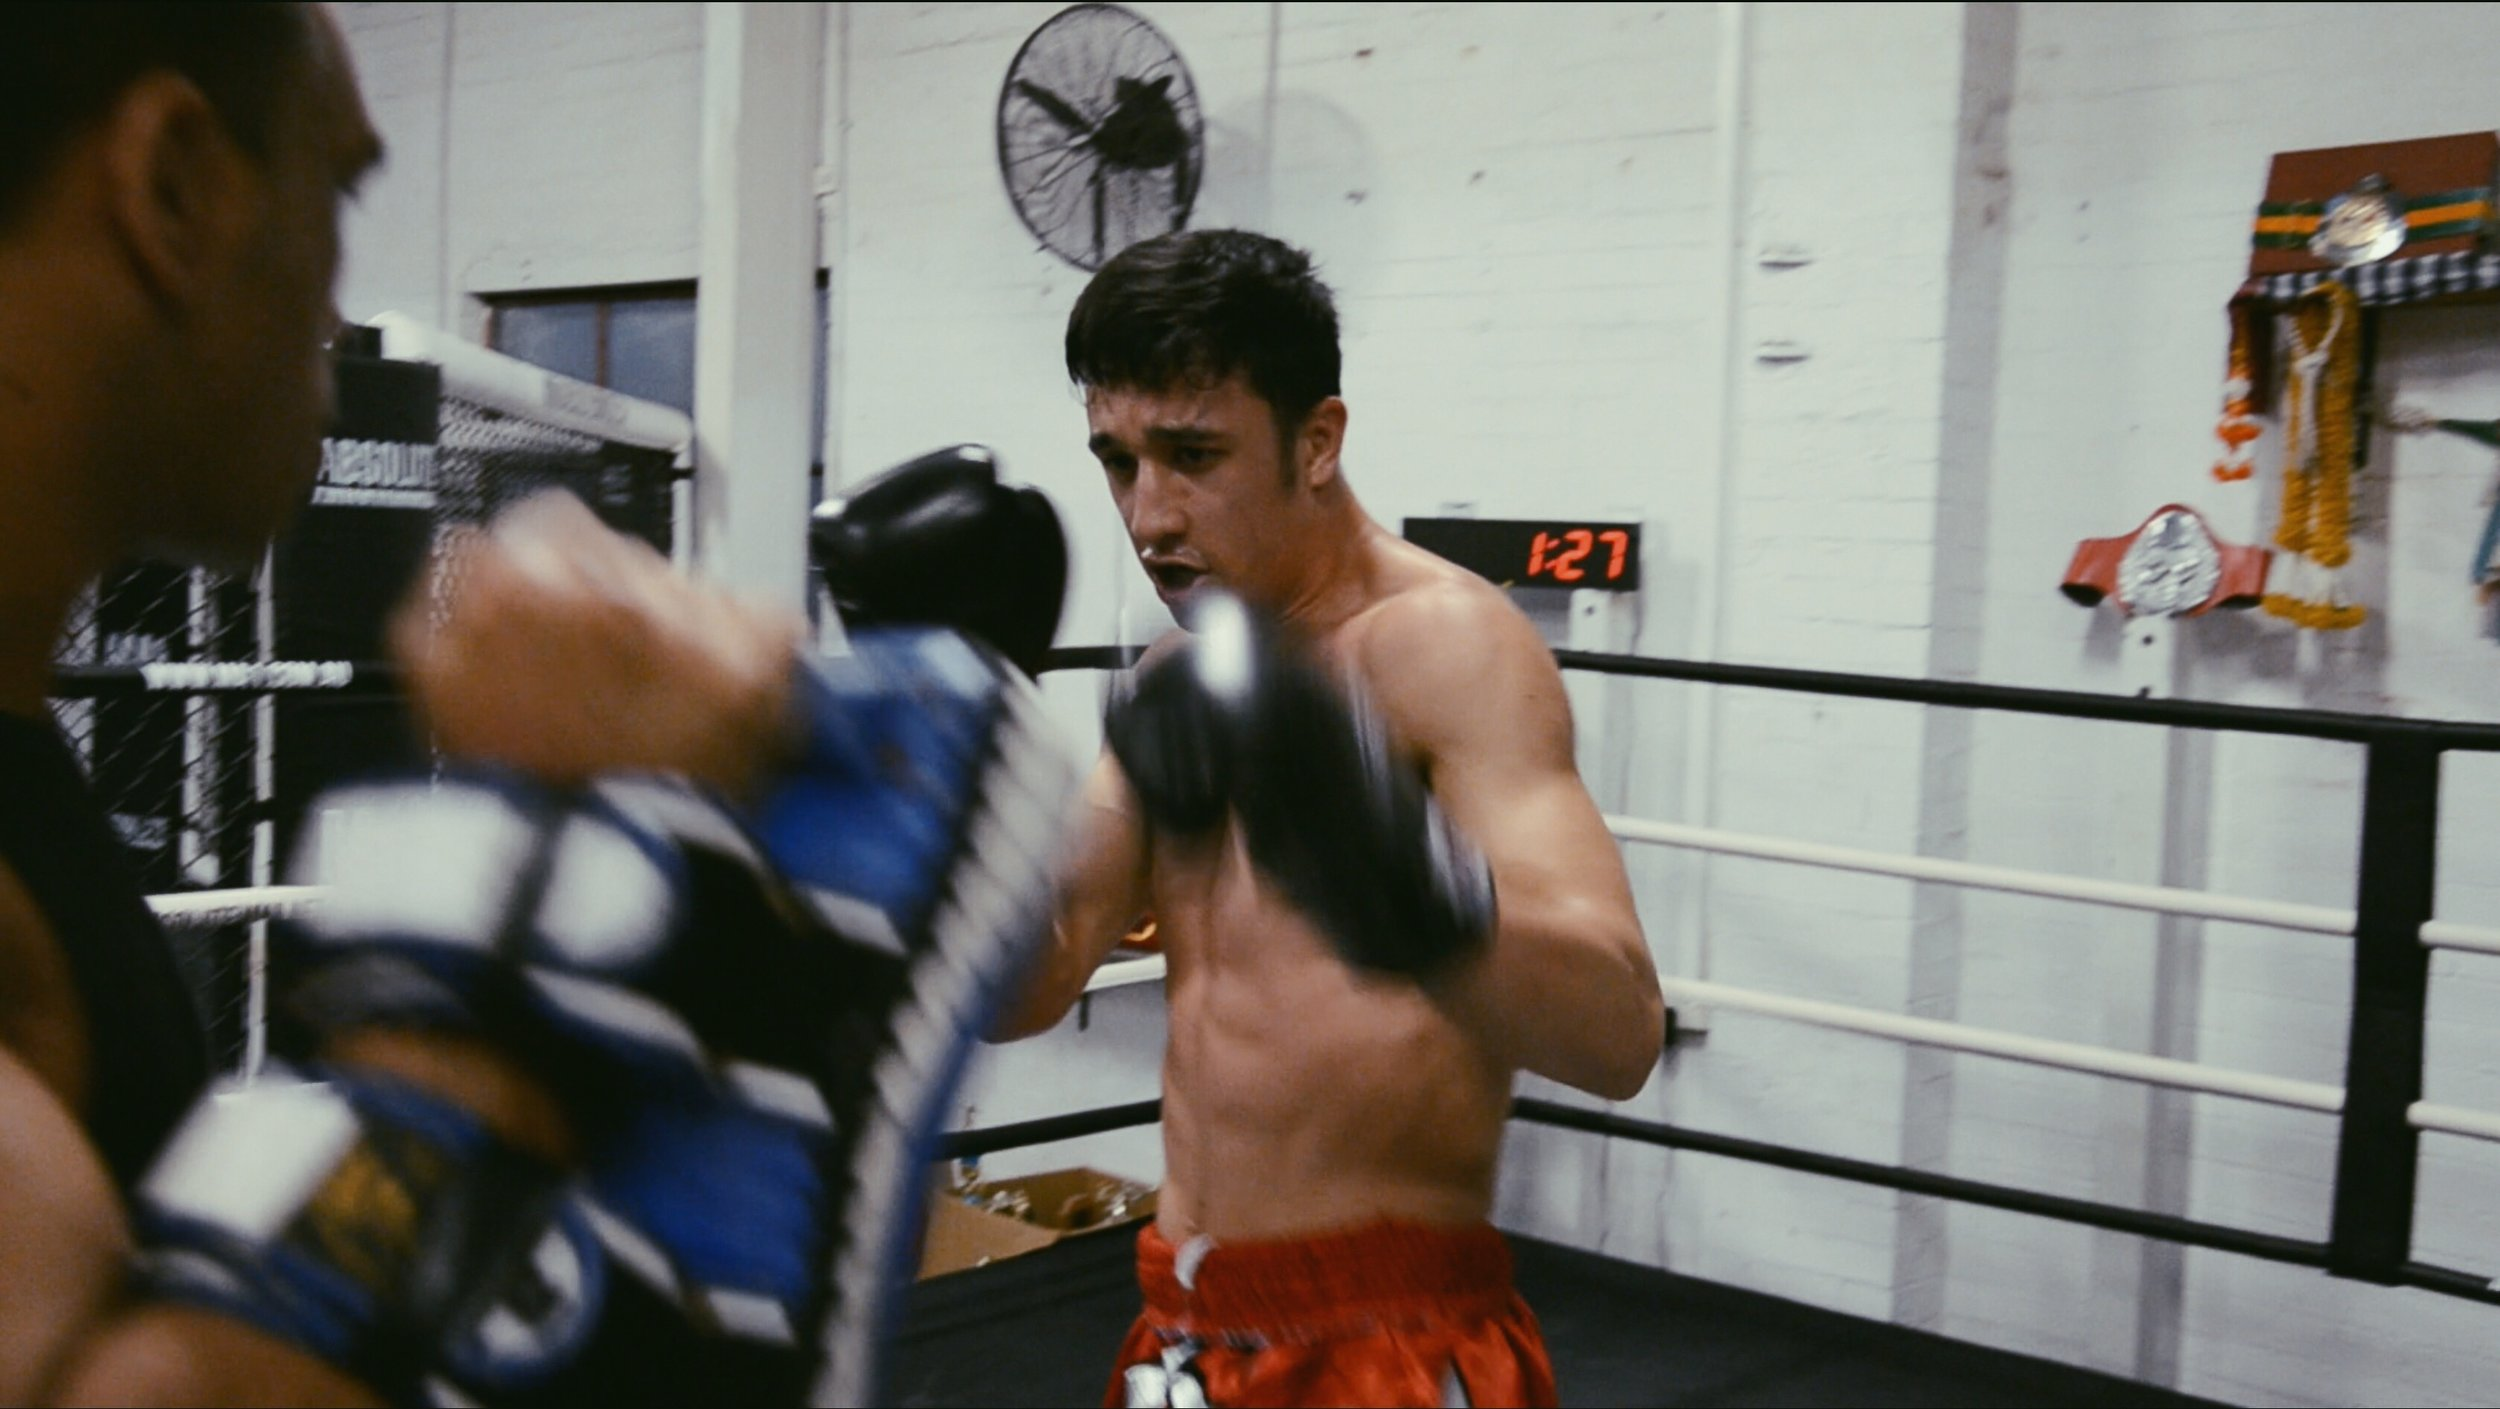 Liam working on his pad kicking